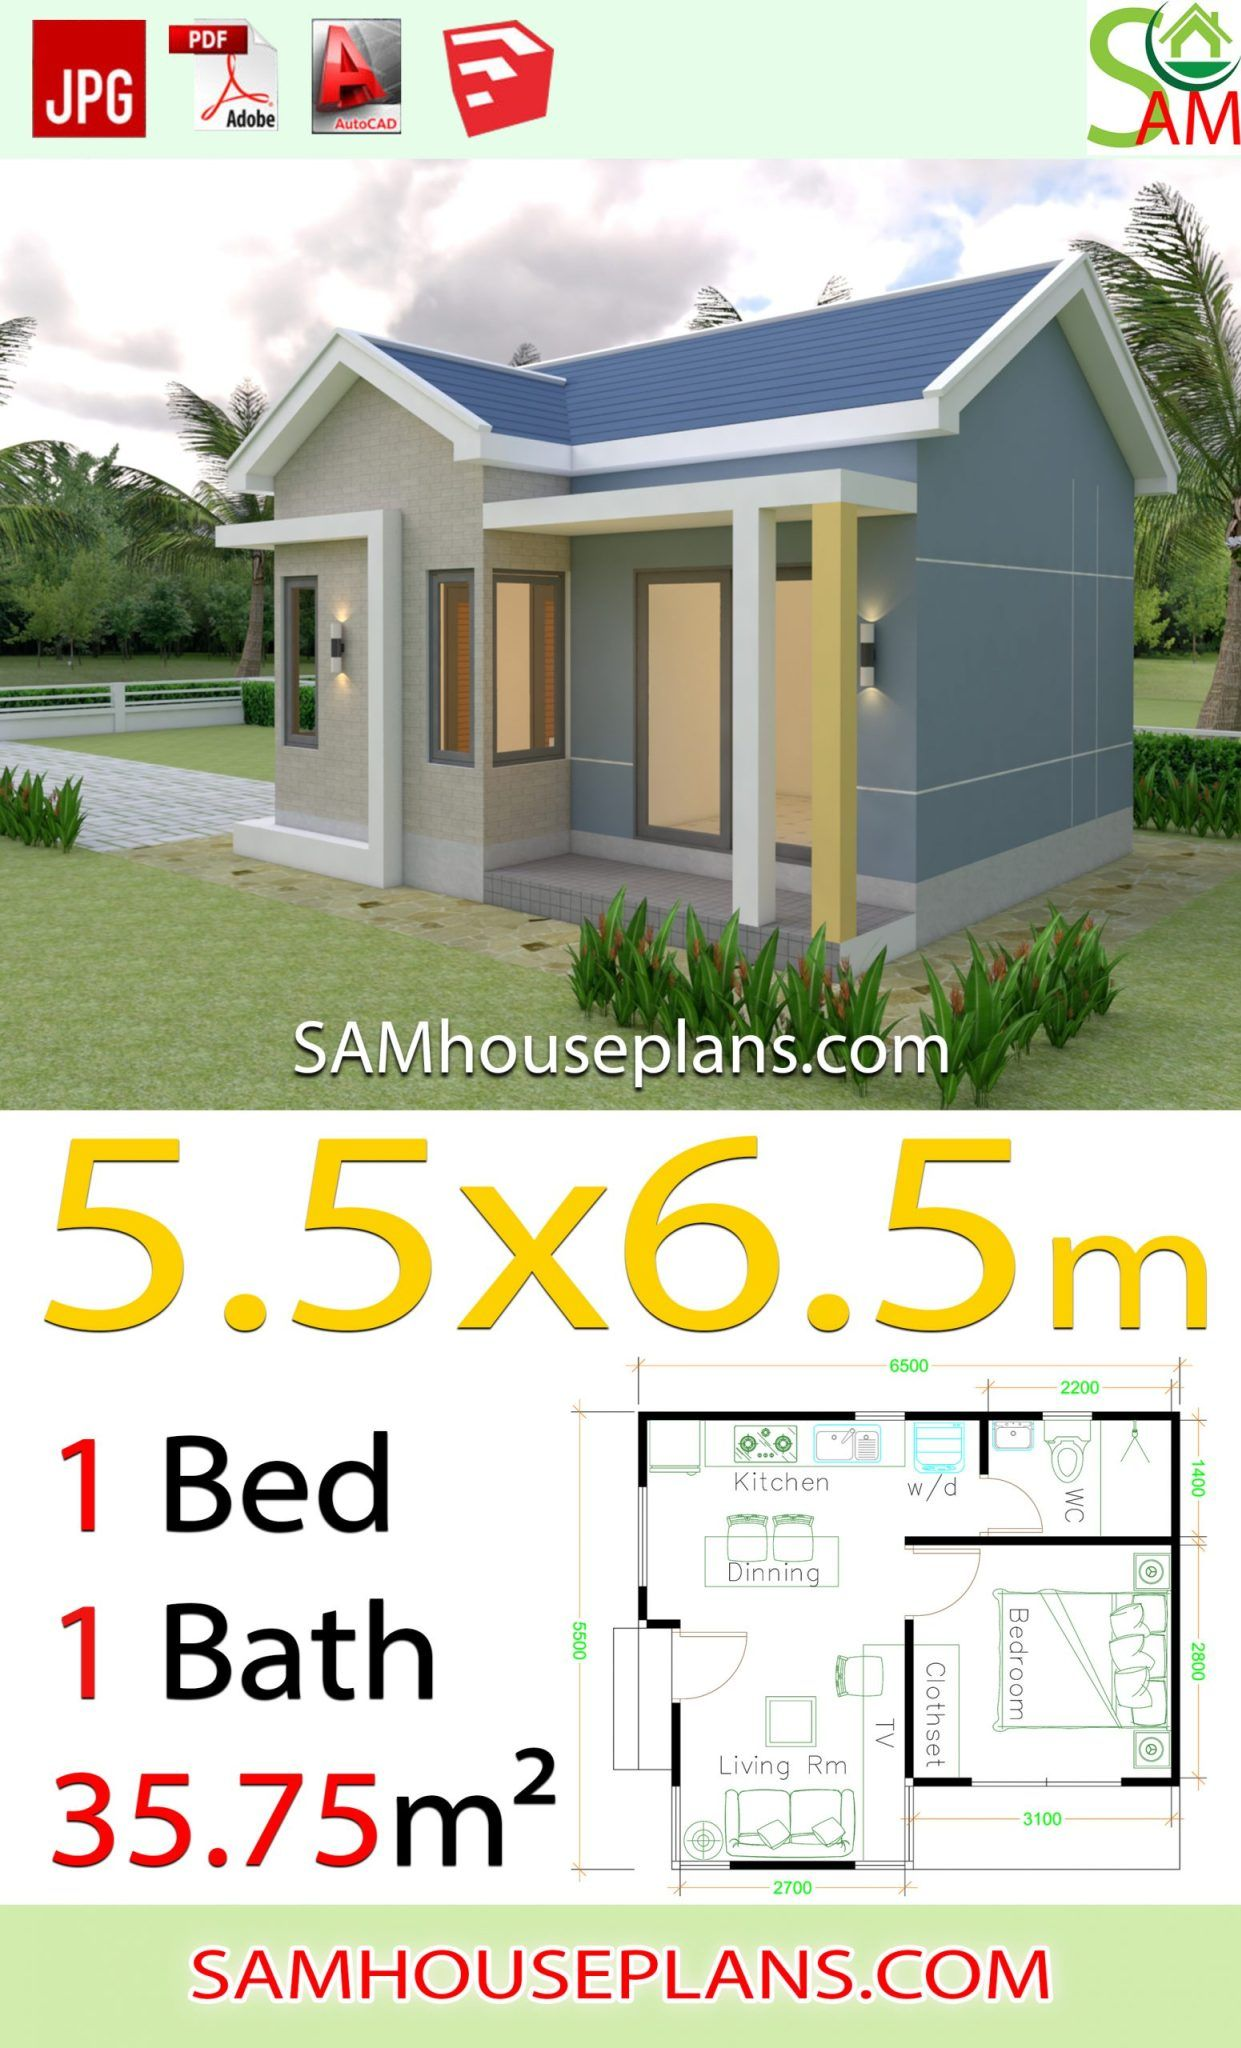 House Design Plans 5 5x6 5 With One Bedroom Gable Roof In 2020 Home Design Plans Gable Roof House Design